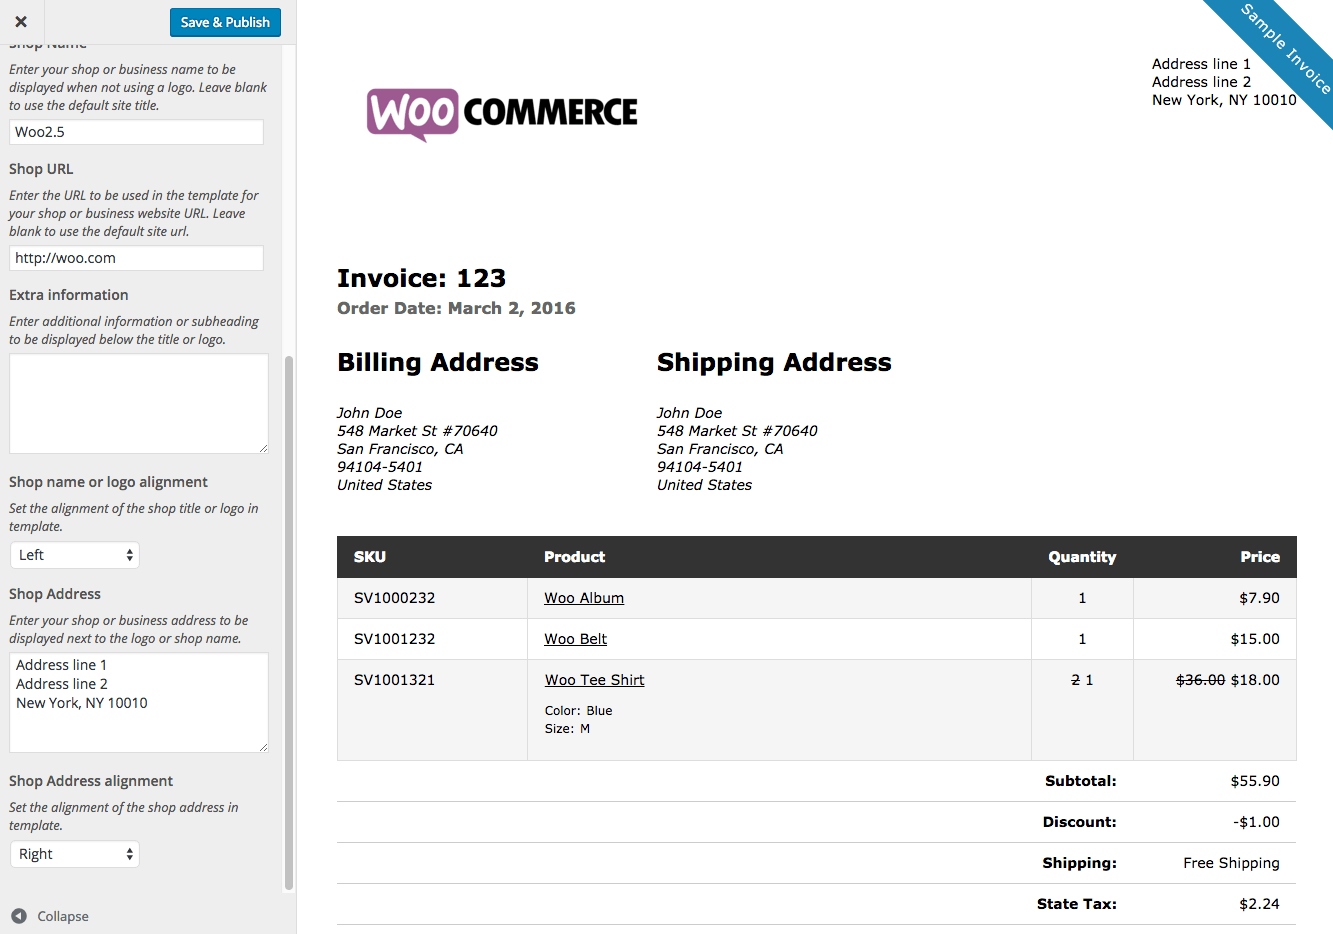 Darkfaderus  Marvelous Print Invoices Amp Packing Lists  Woocommerce With Inspiring Woocommerce Print Invoices  Packing Lists Customizer With Adorable Invoicing And Accounting Software Also How To Fill In An Invoice In Addition Meaning Proforma Invoice And Tax Invoice Excel Template As Well As Invoice Reconciliation Process Additionally Invoice Books With Company Logo From Woocommercecom With Darkfaderus  Inspiring Print Invoices Amp Packing Lists  Woocommerce With Adorable Woocommerce Print Invoices  Packing Lists Customizer And Marvelous Invoicing And Accounting Software Also How To Fill In An Invoice In Addition Meaning Proforma Invoice From Woocommercecom